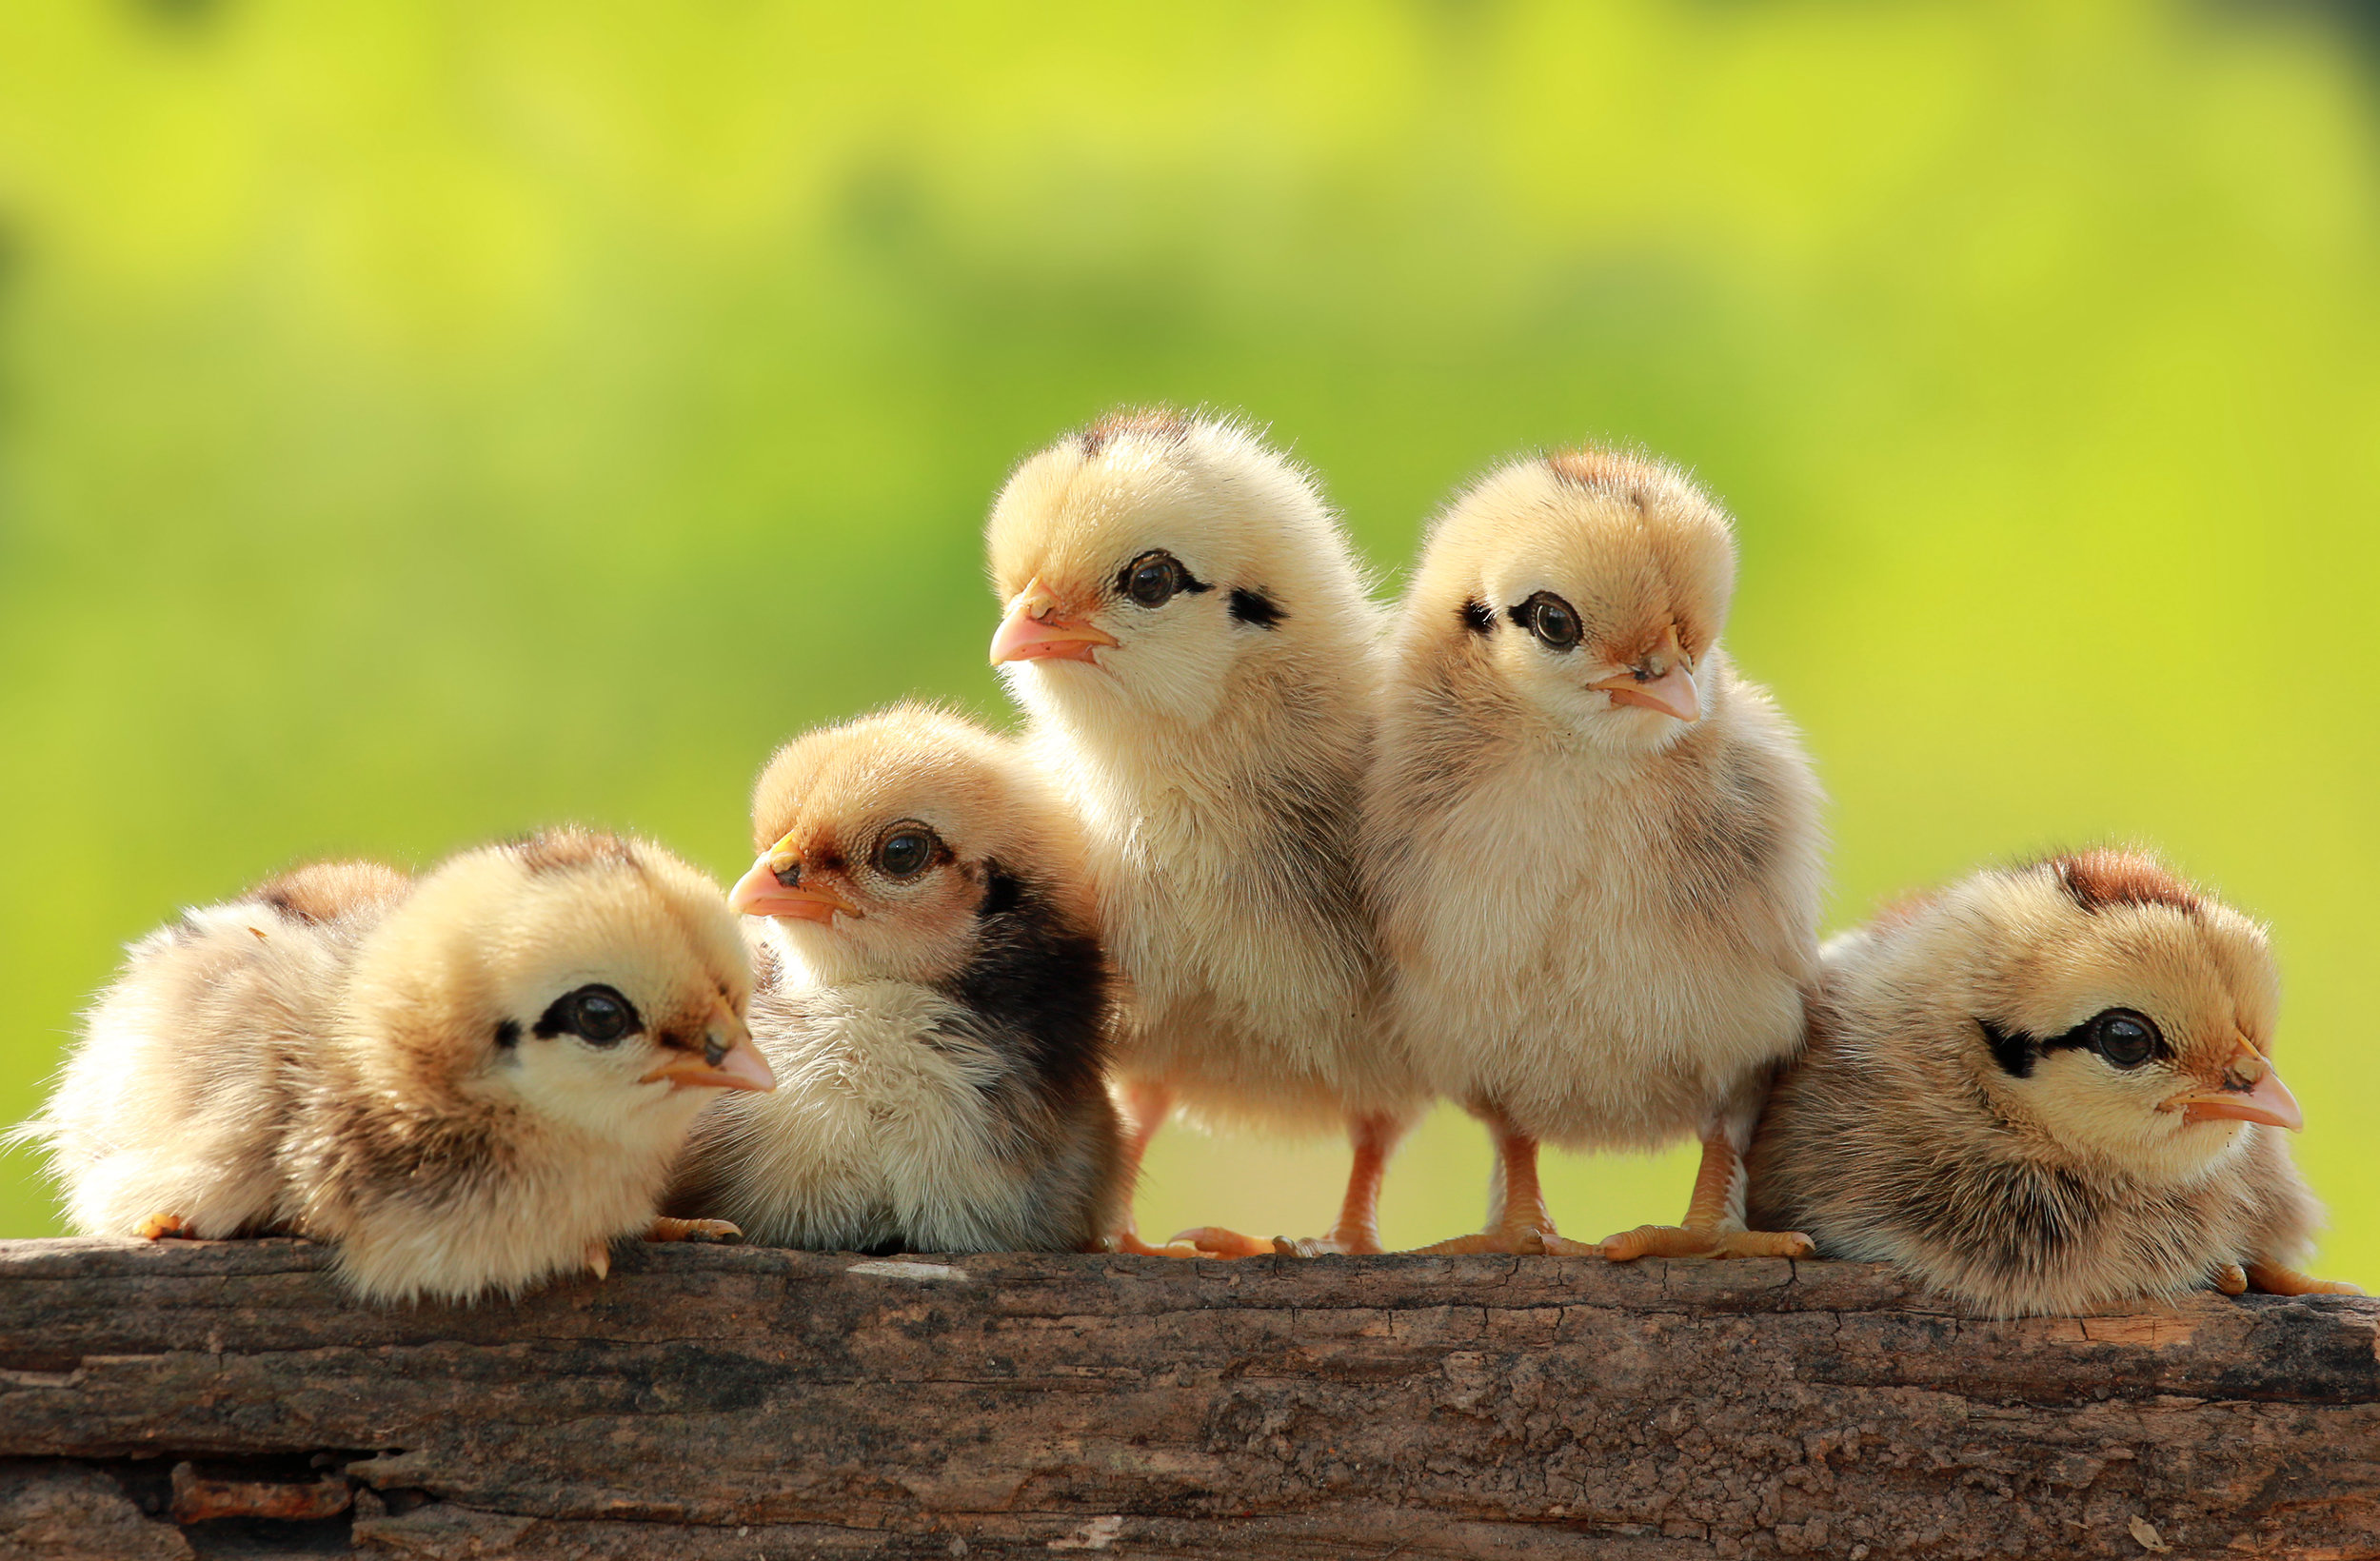 CHICK DAYS - We will have a late run in September and October!